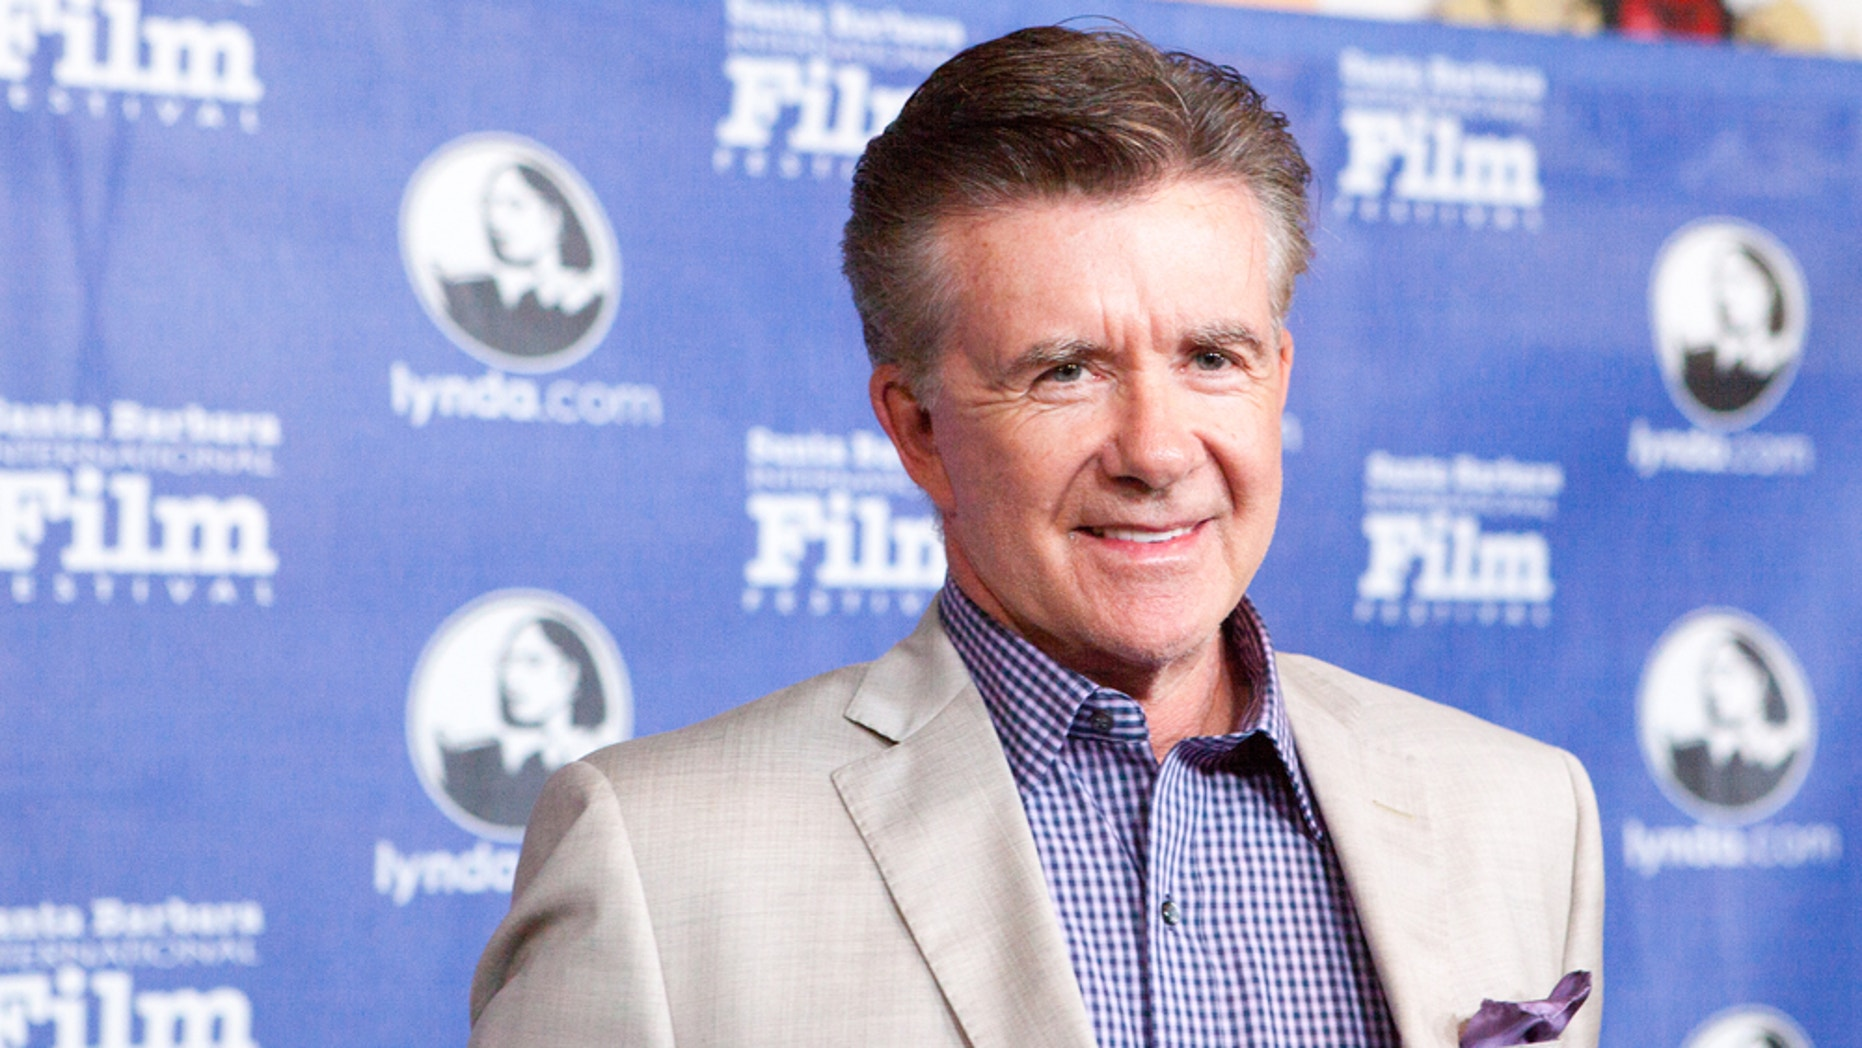 Actor Alan Thicke at the opening of the Santa Barbara International Film Festival in 2013.